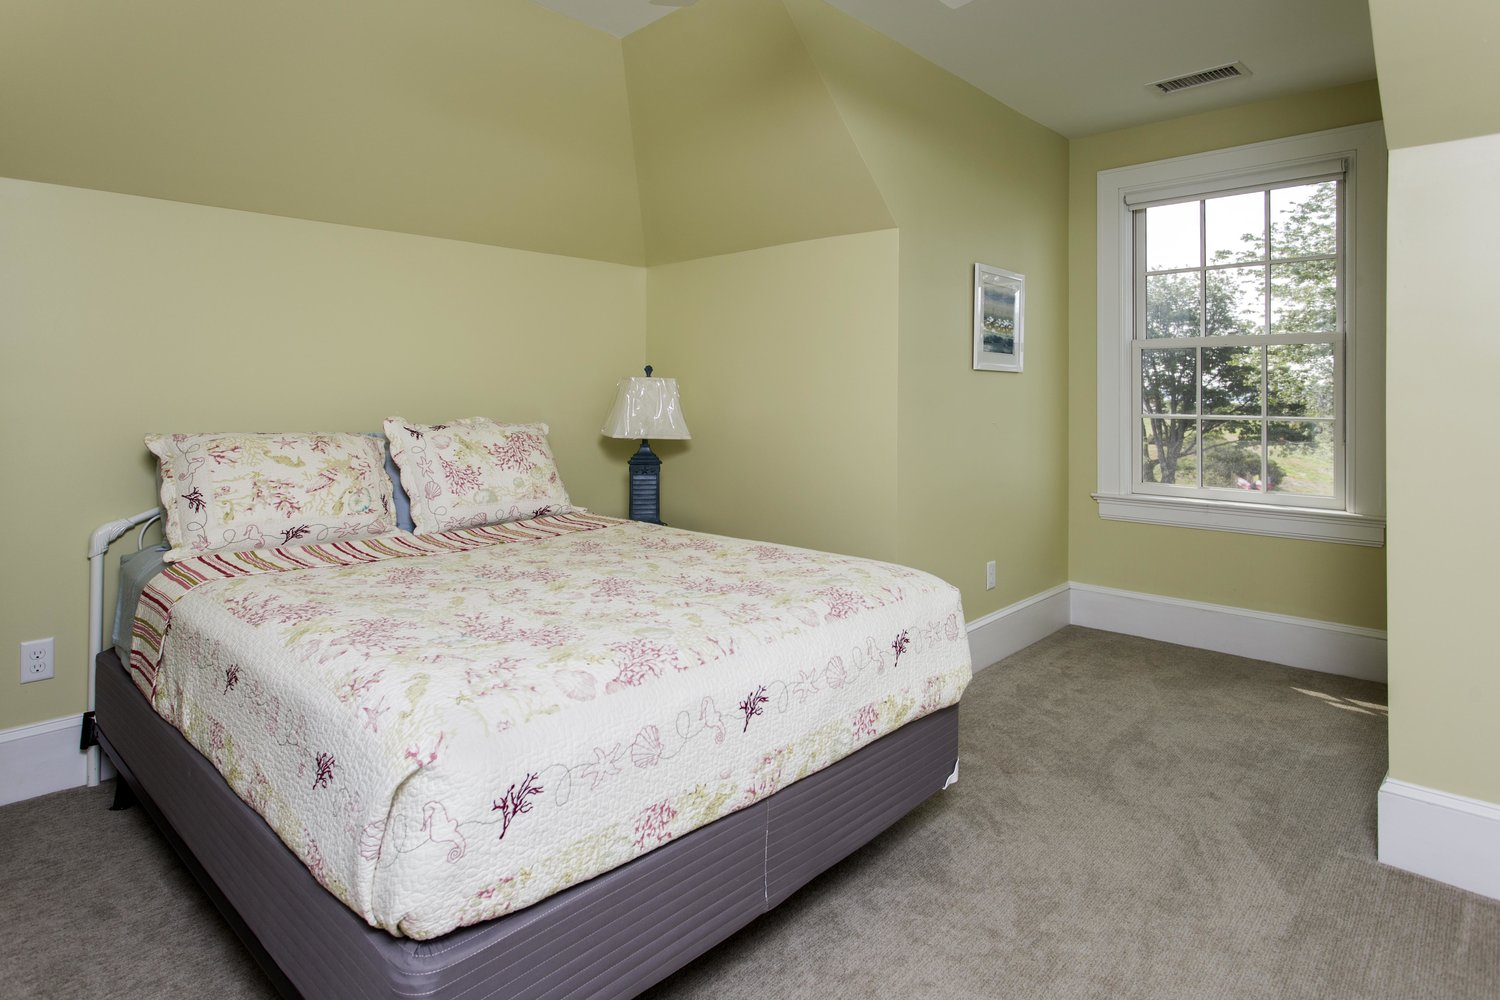 1 of 2 queen suite bedrooms in Cappy's Lodge, House Island, Portland Maine